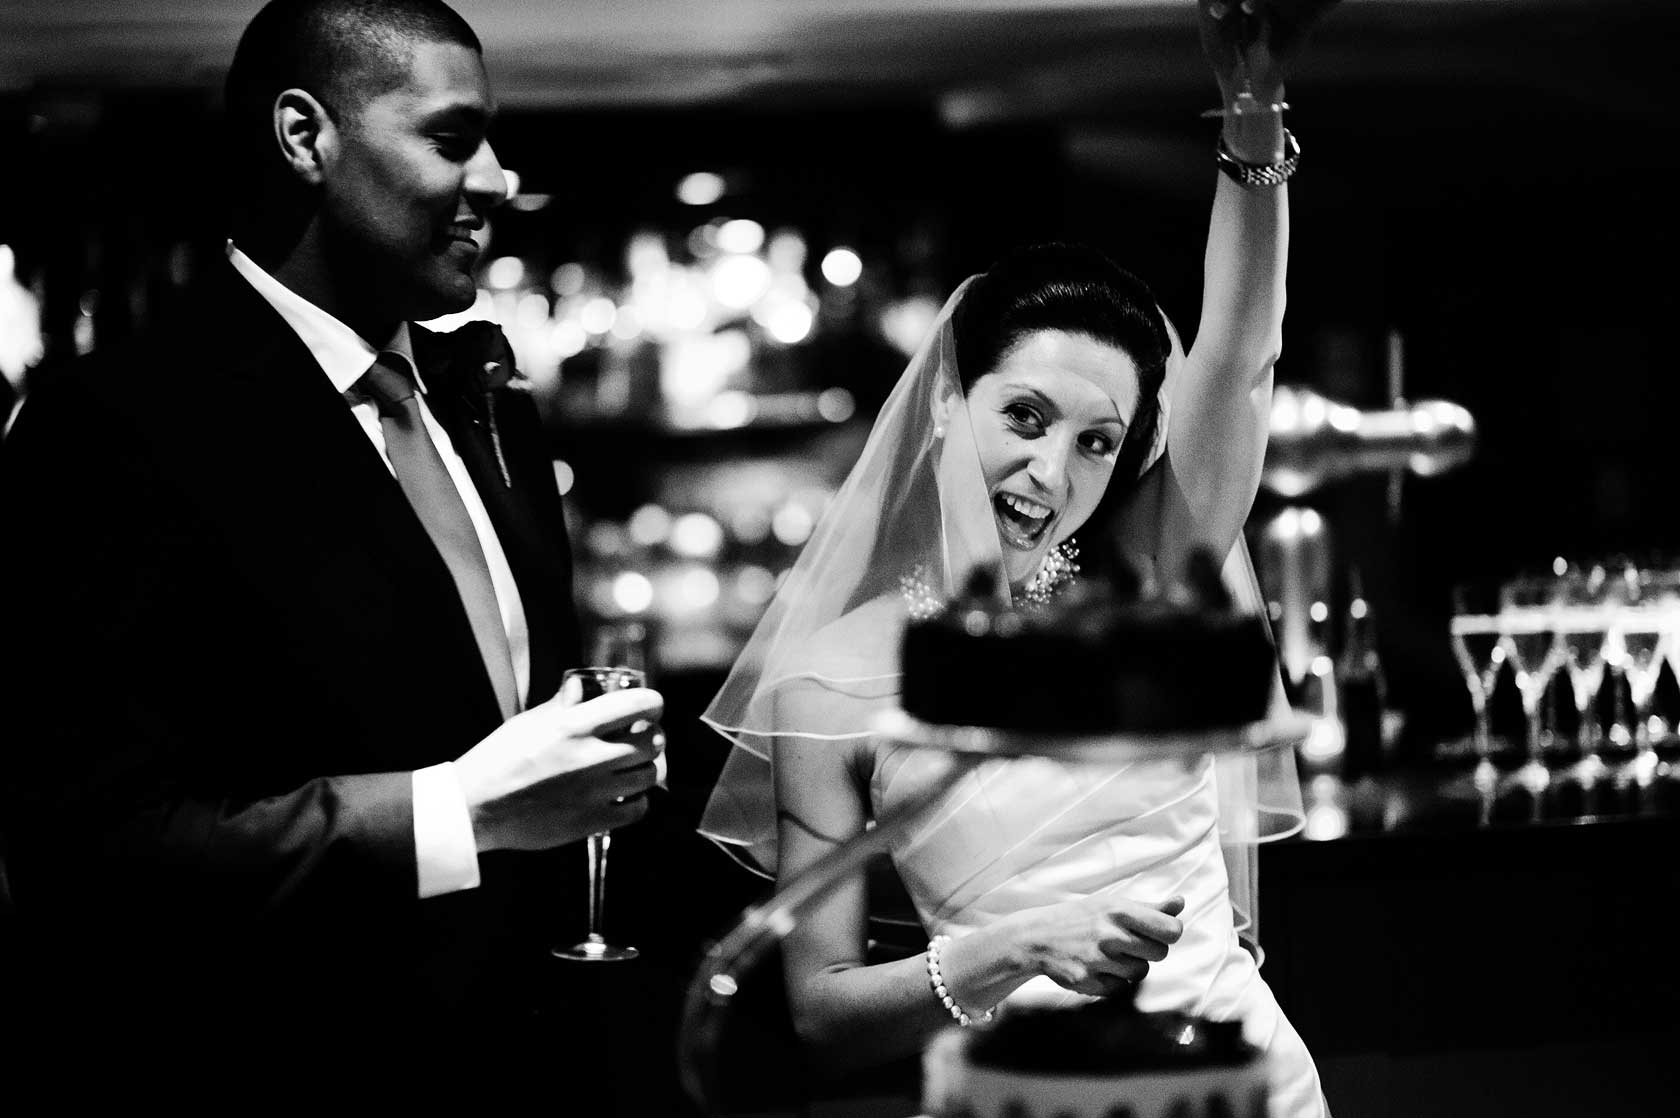 Reportage Wedding Photography at High Road House